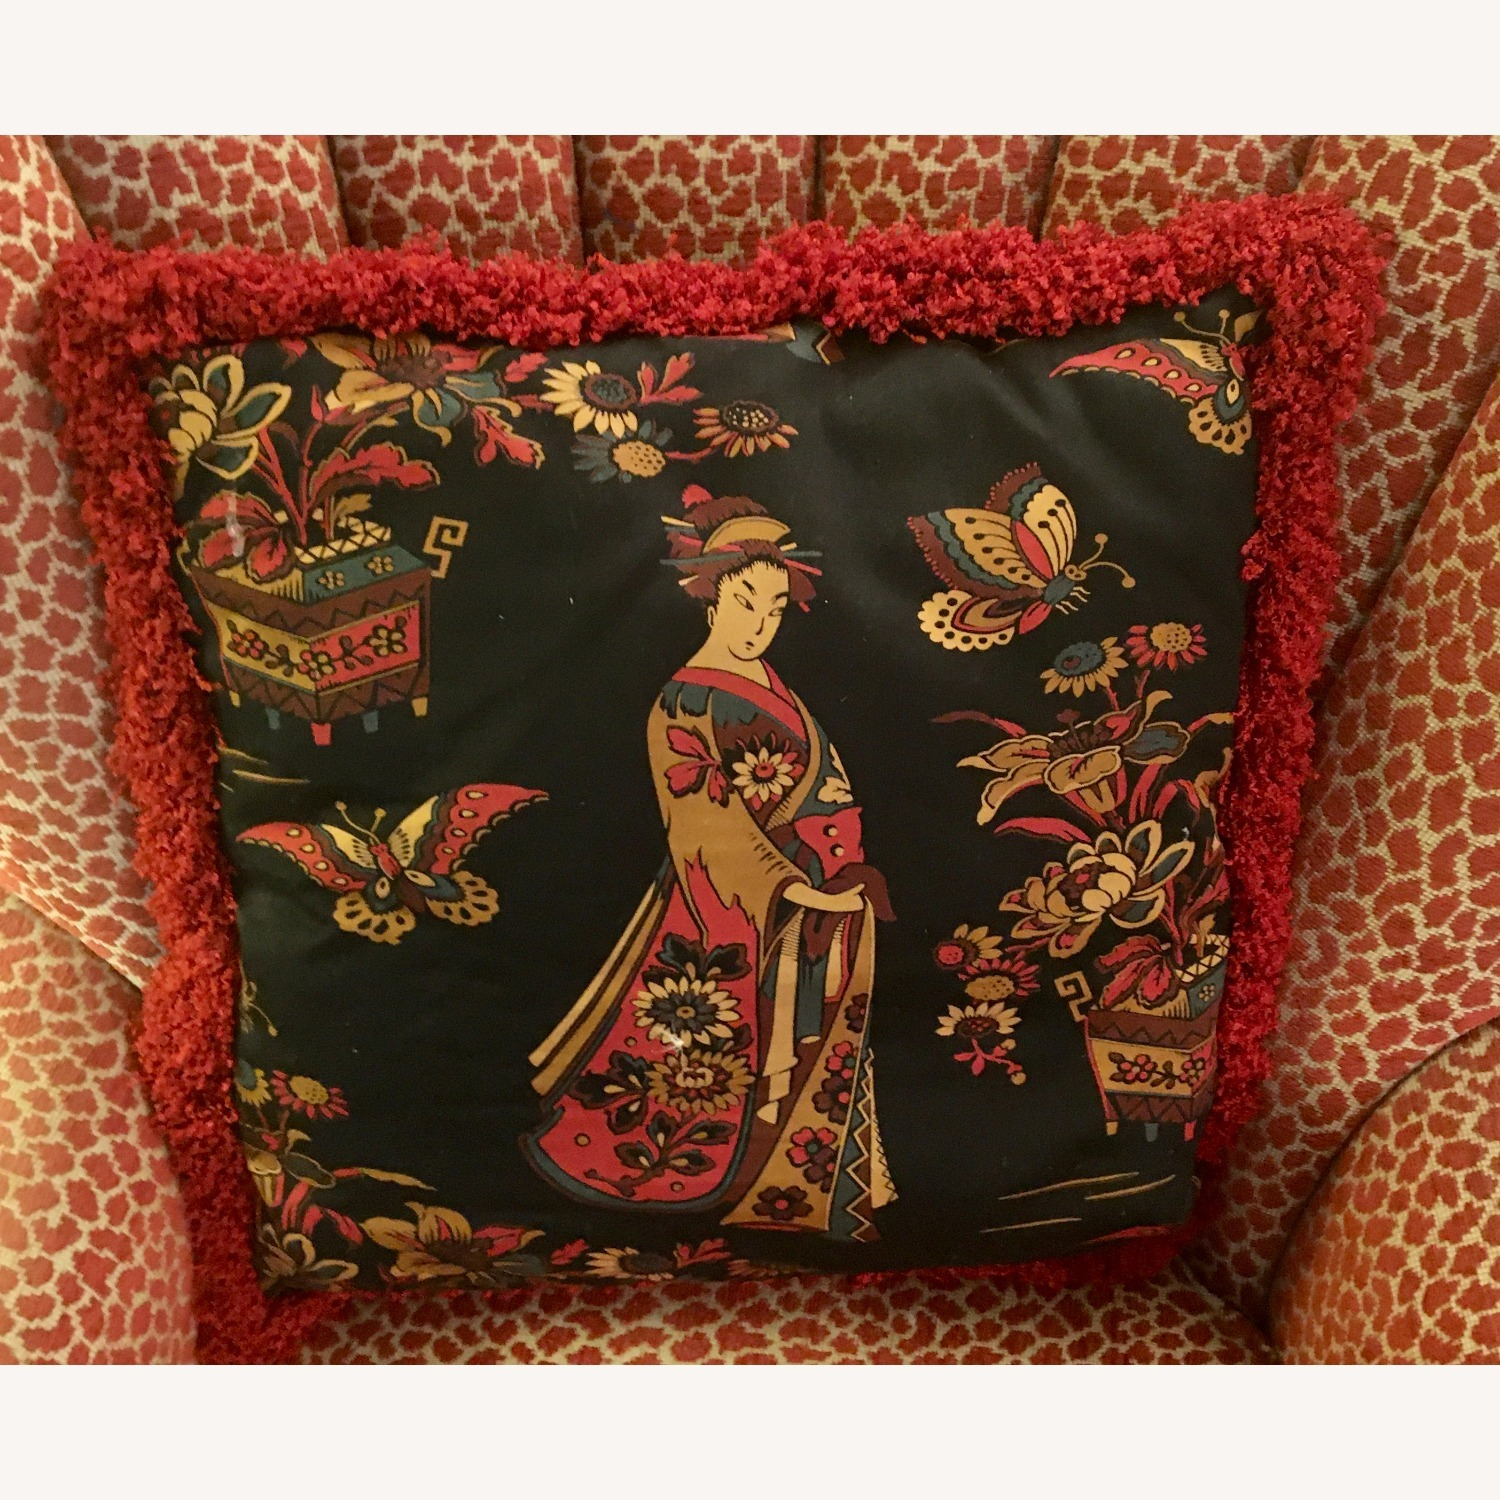 Multi-colored Decorative Pillow with Geisha - image-3